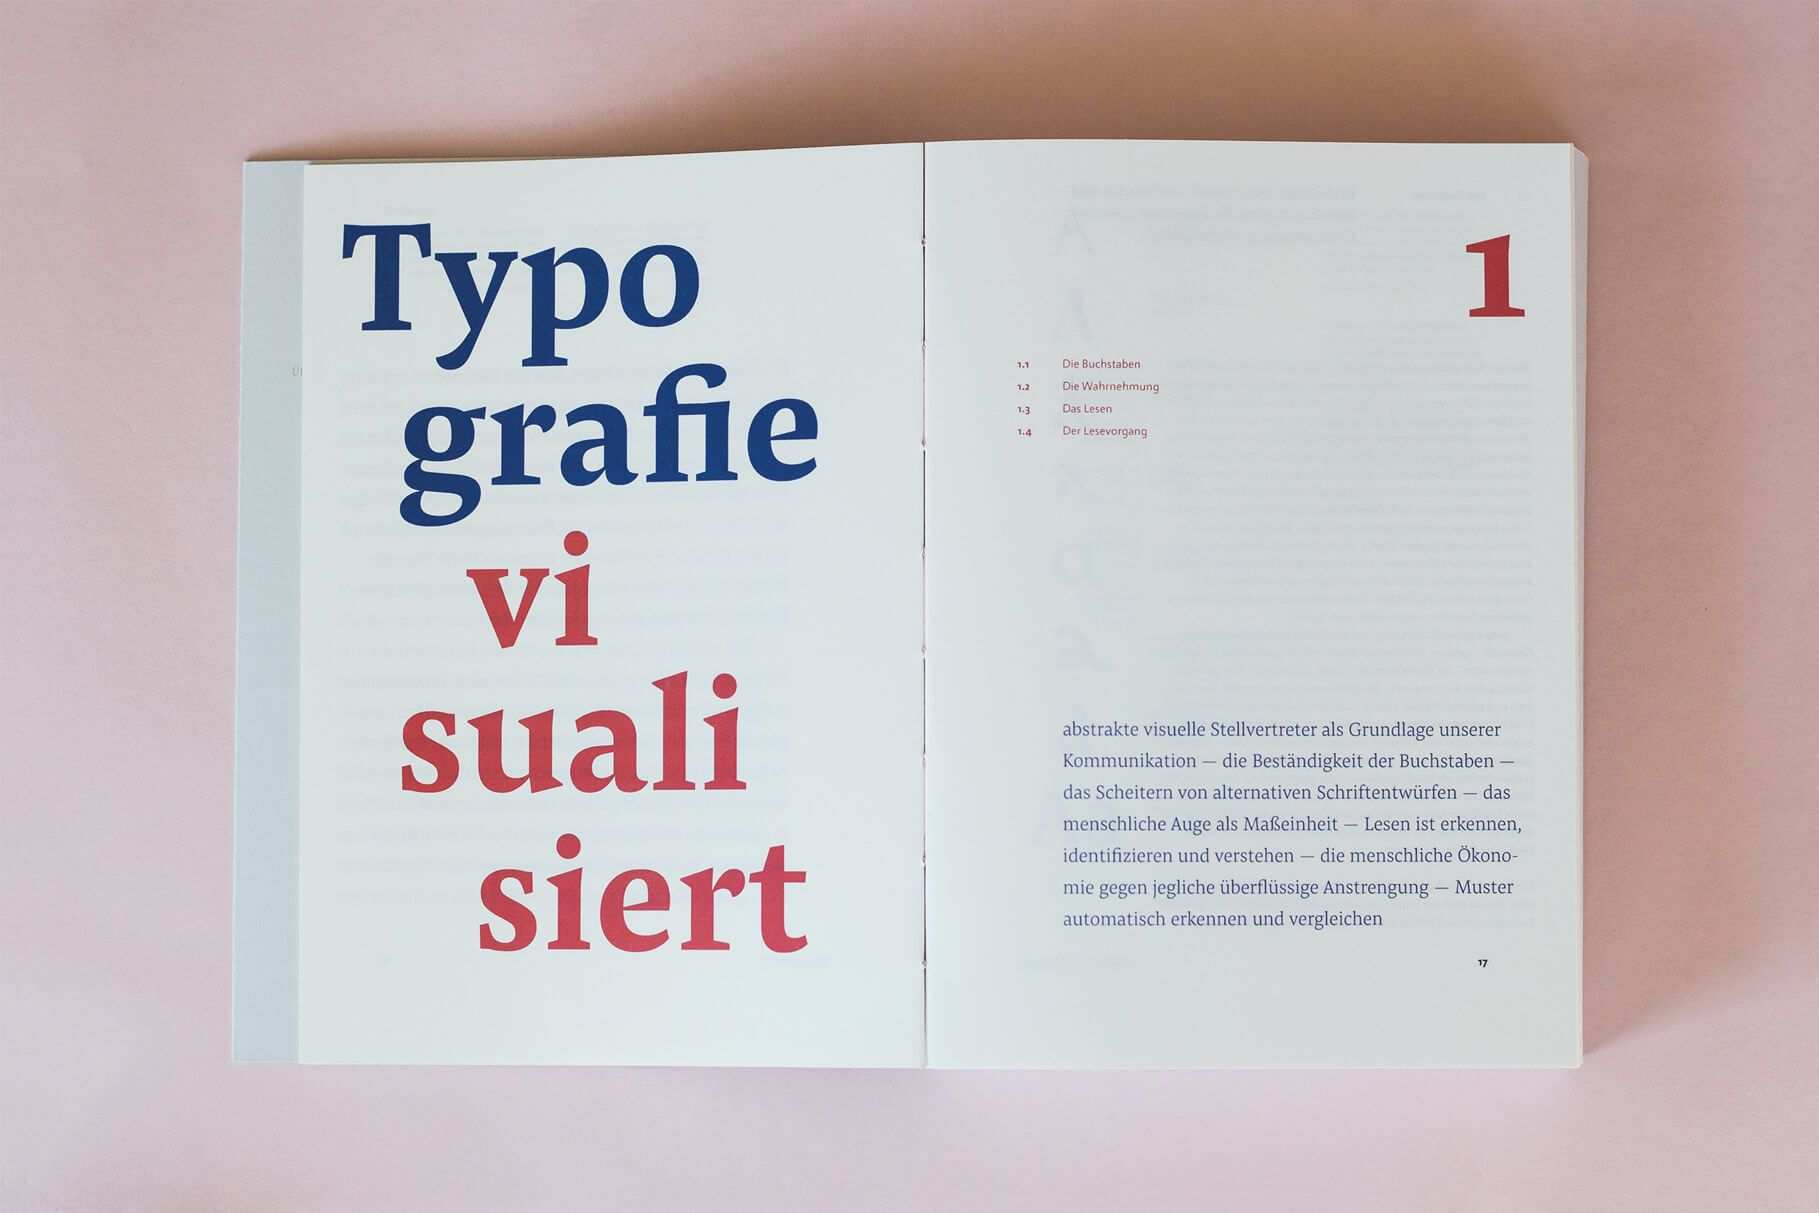 Ansichtssache Bachelor Thesis By Sabrina Ottl On Readability And The Details In Typography Uses Pensum Pro For Text And Headlines Typography Design Thesis